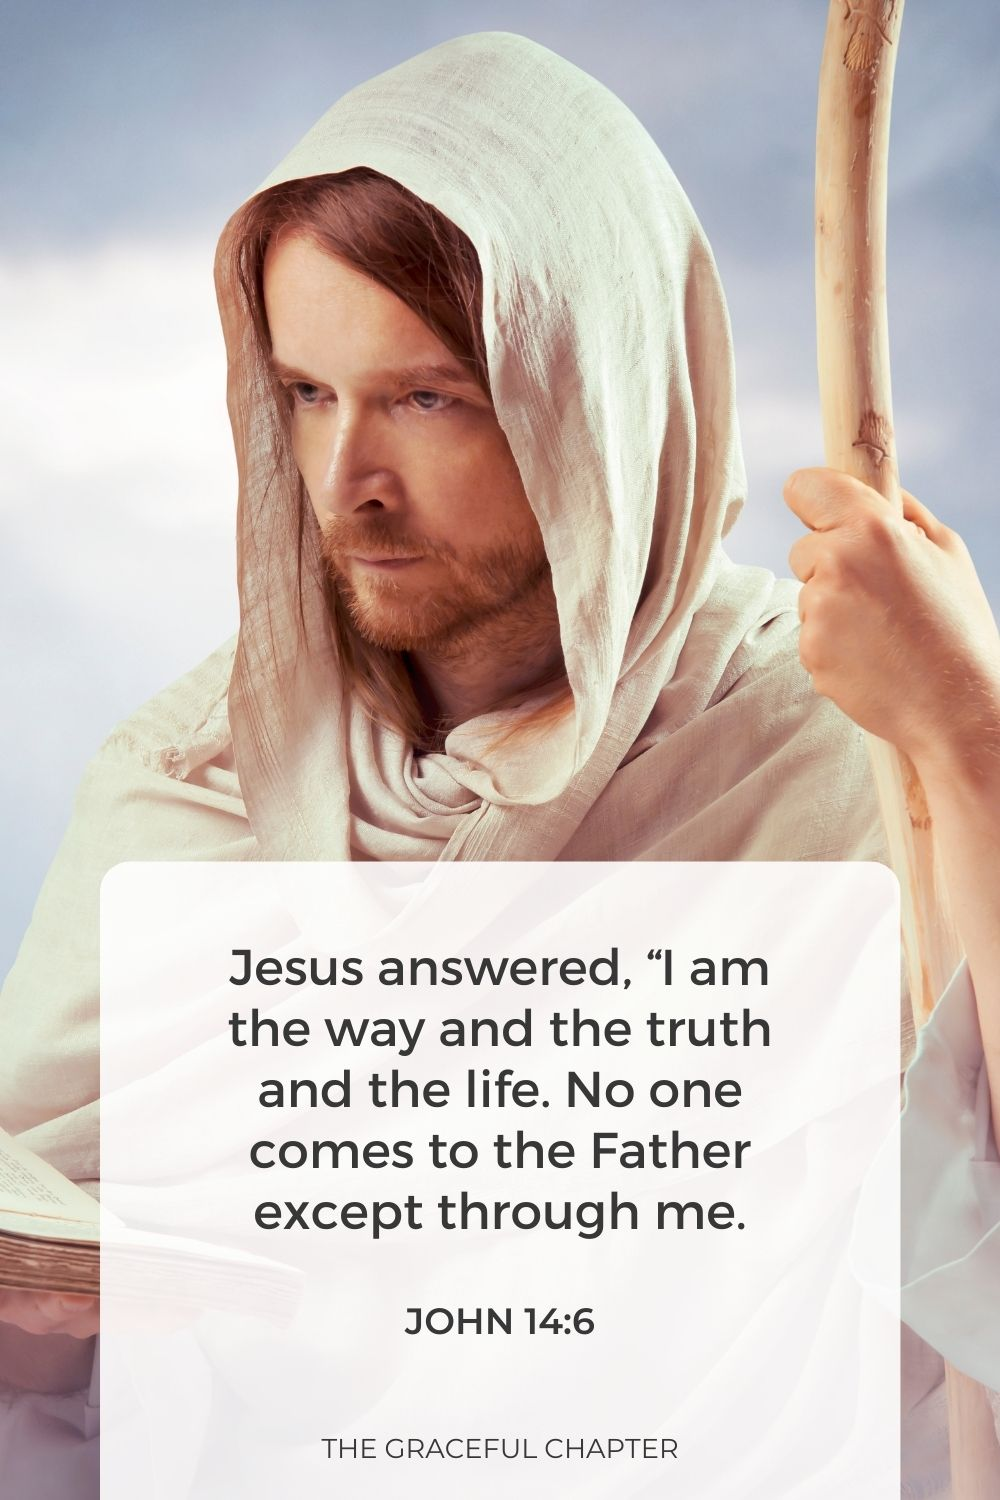 """Jesus answered, """"I am the way and the truth and the life. No one comes to the Father except through me. John 14:6"""